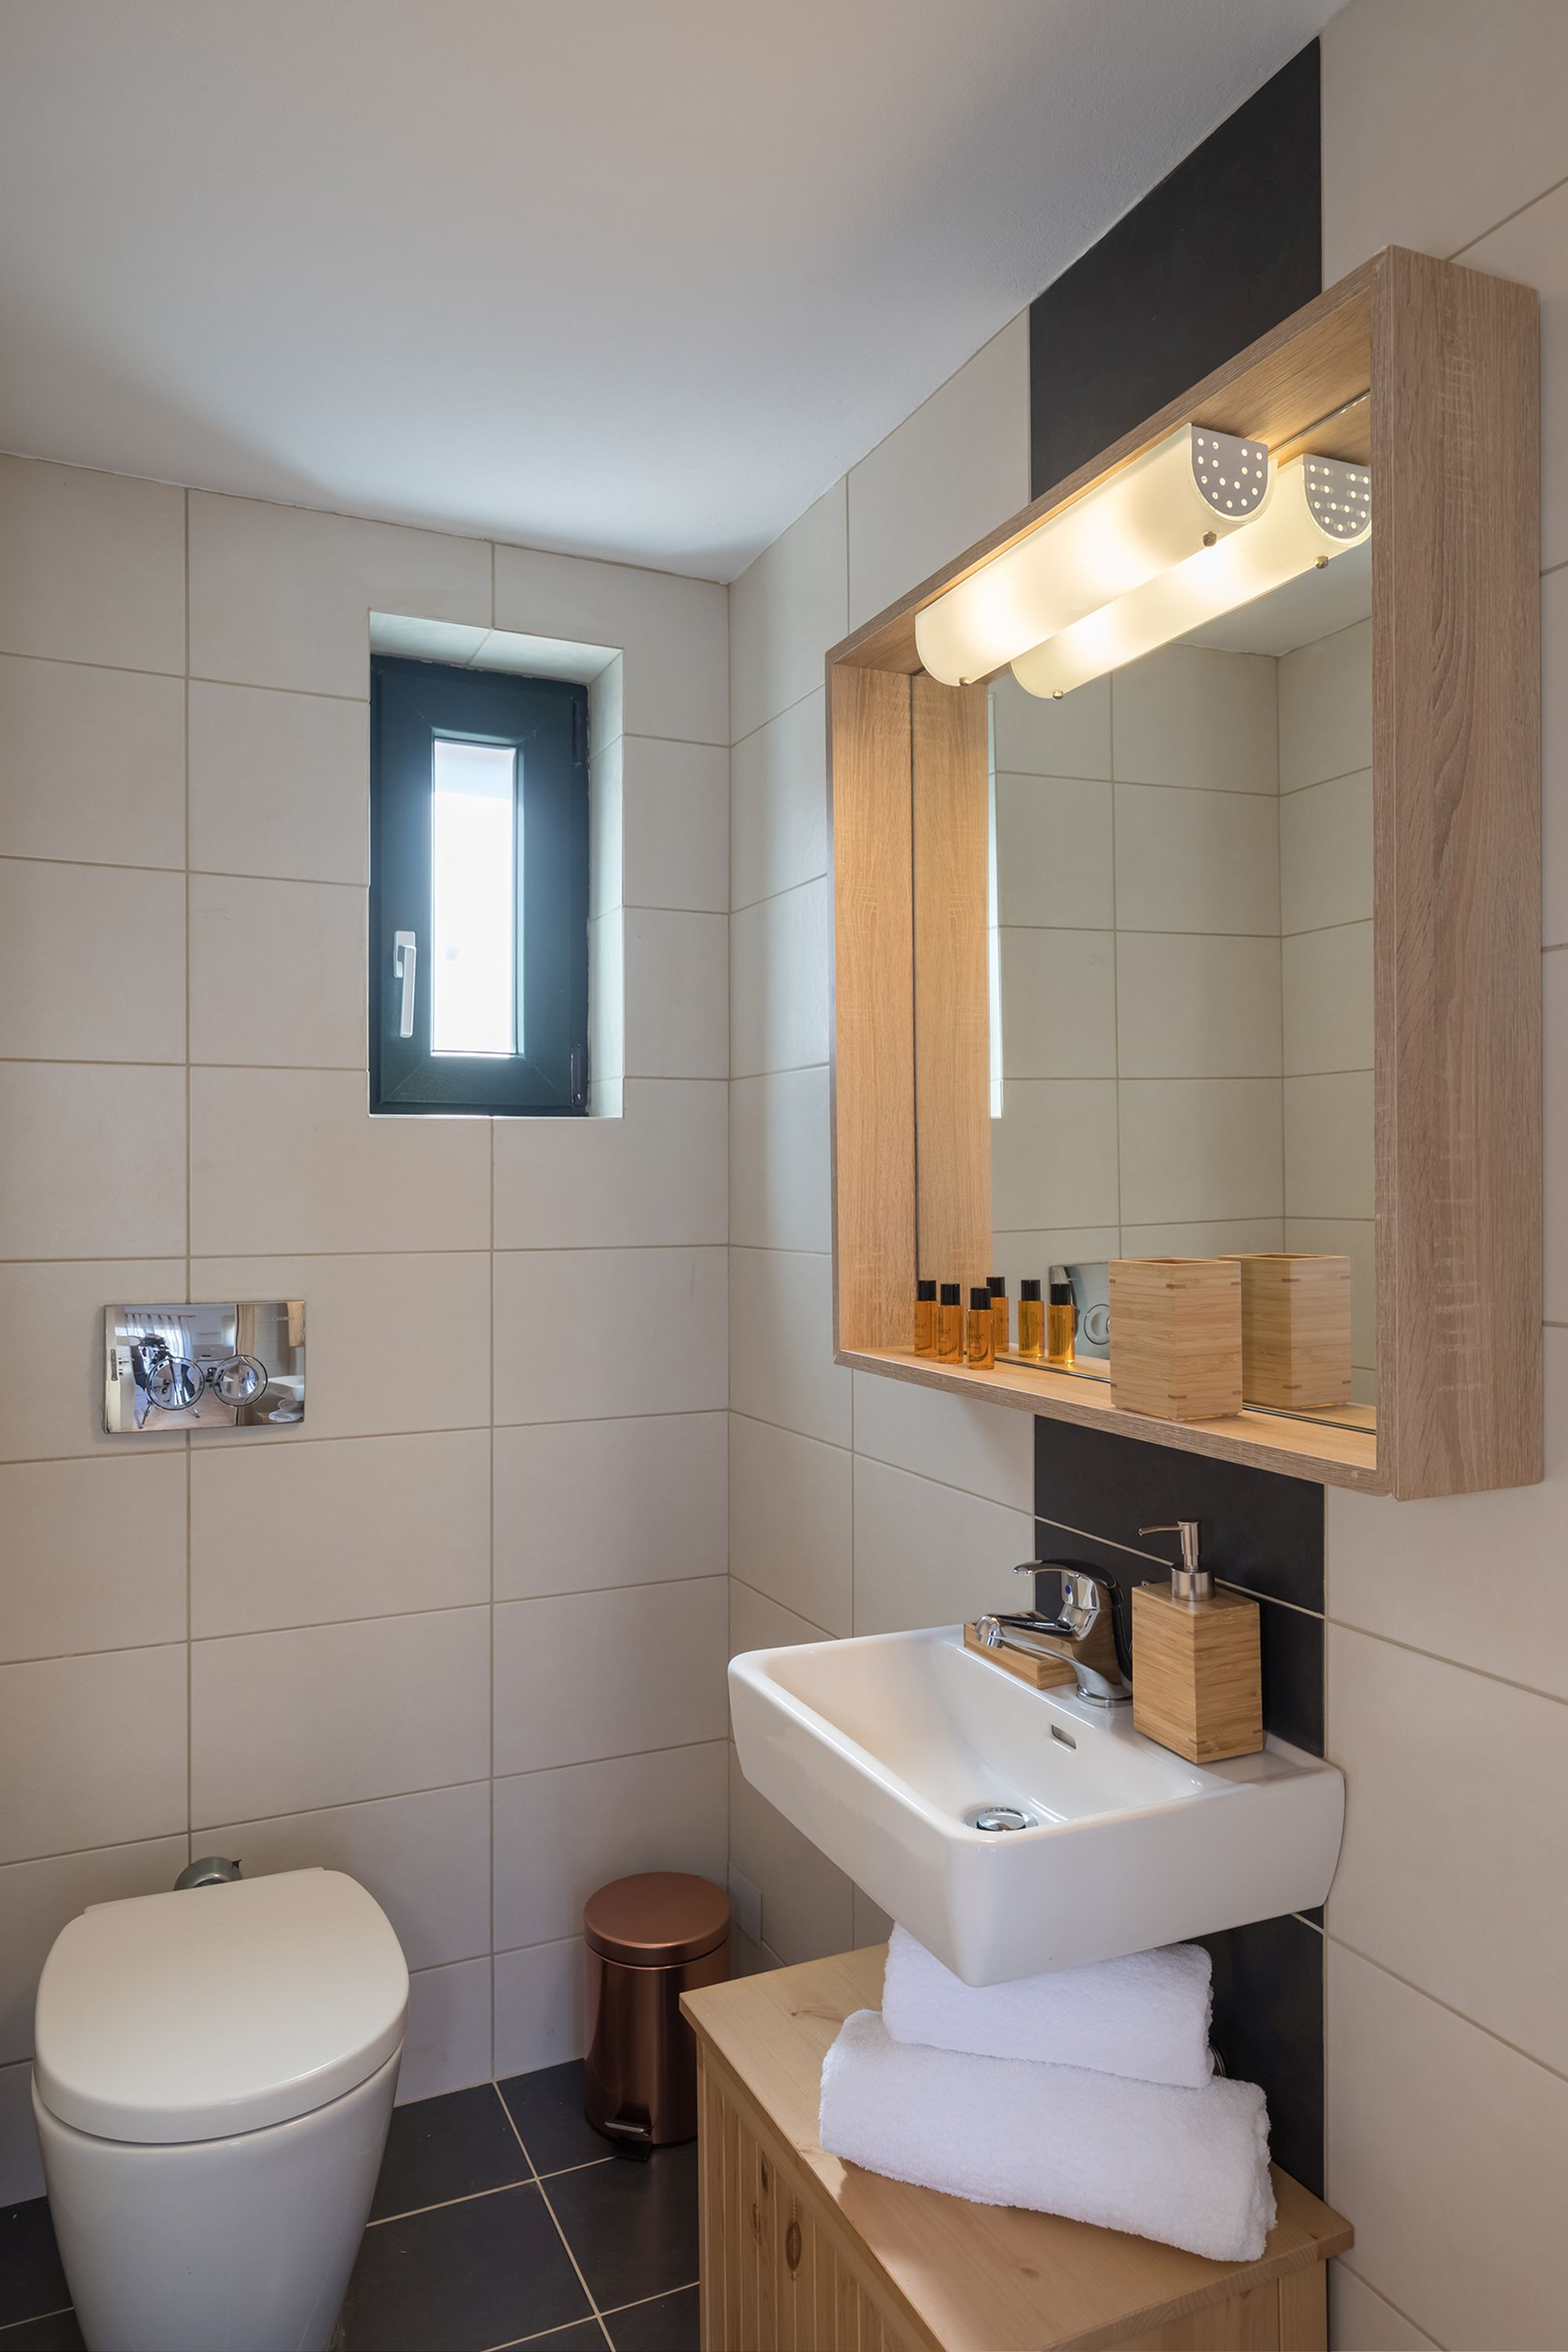 Bathroom with white and gray tiles, a white washbasin and a big wooden mirror.